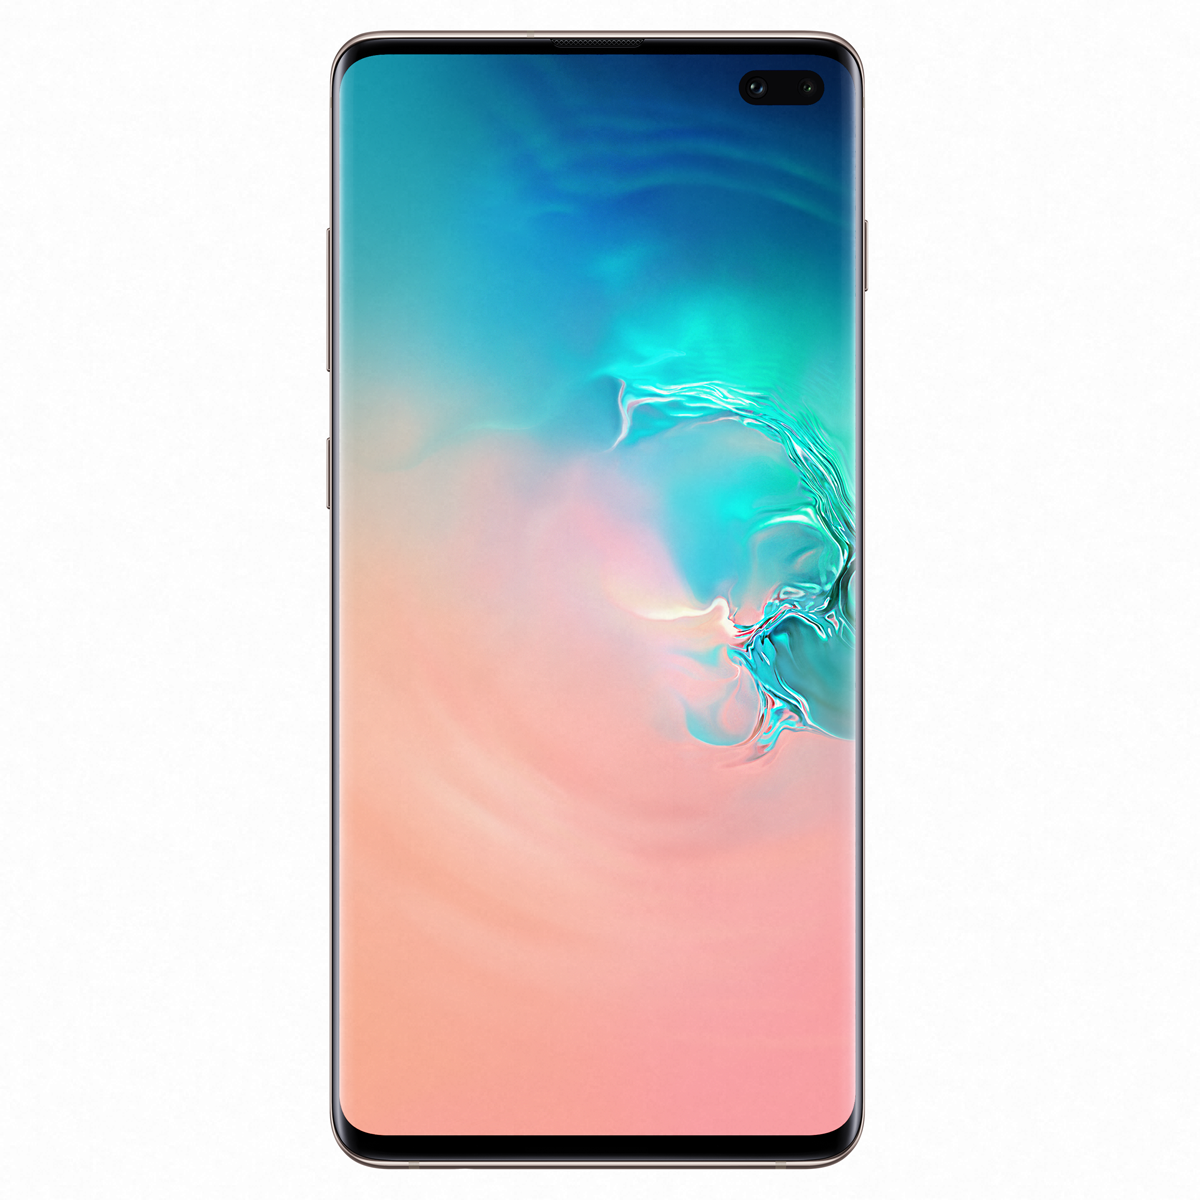 Samsung Galaxy S10 Plus (G975F) 128 GB Beyaz